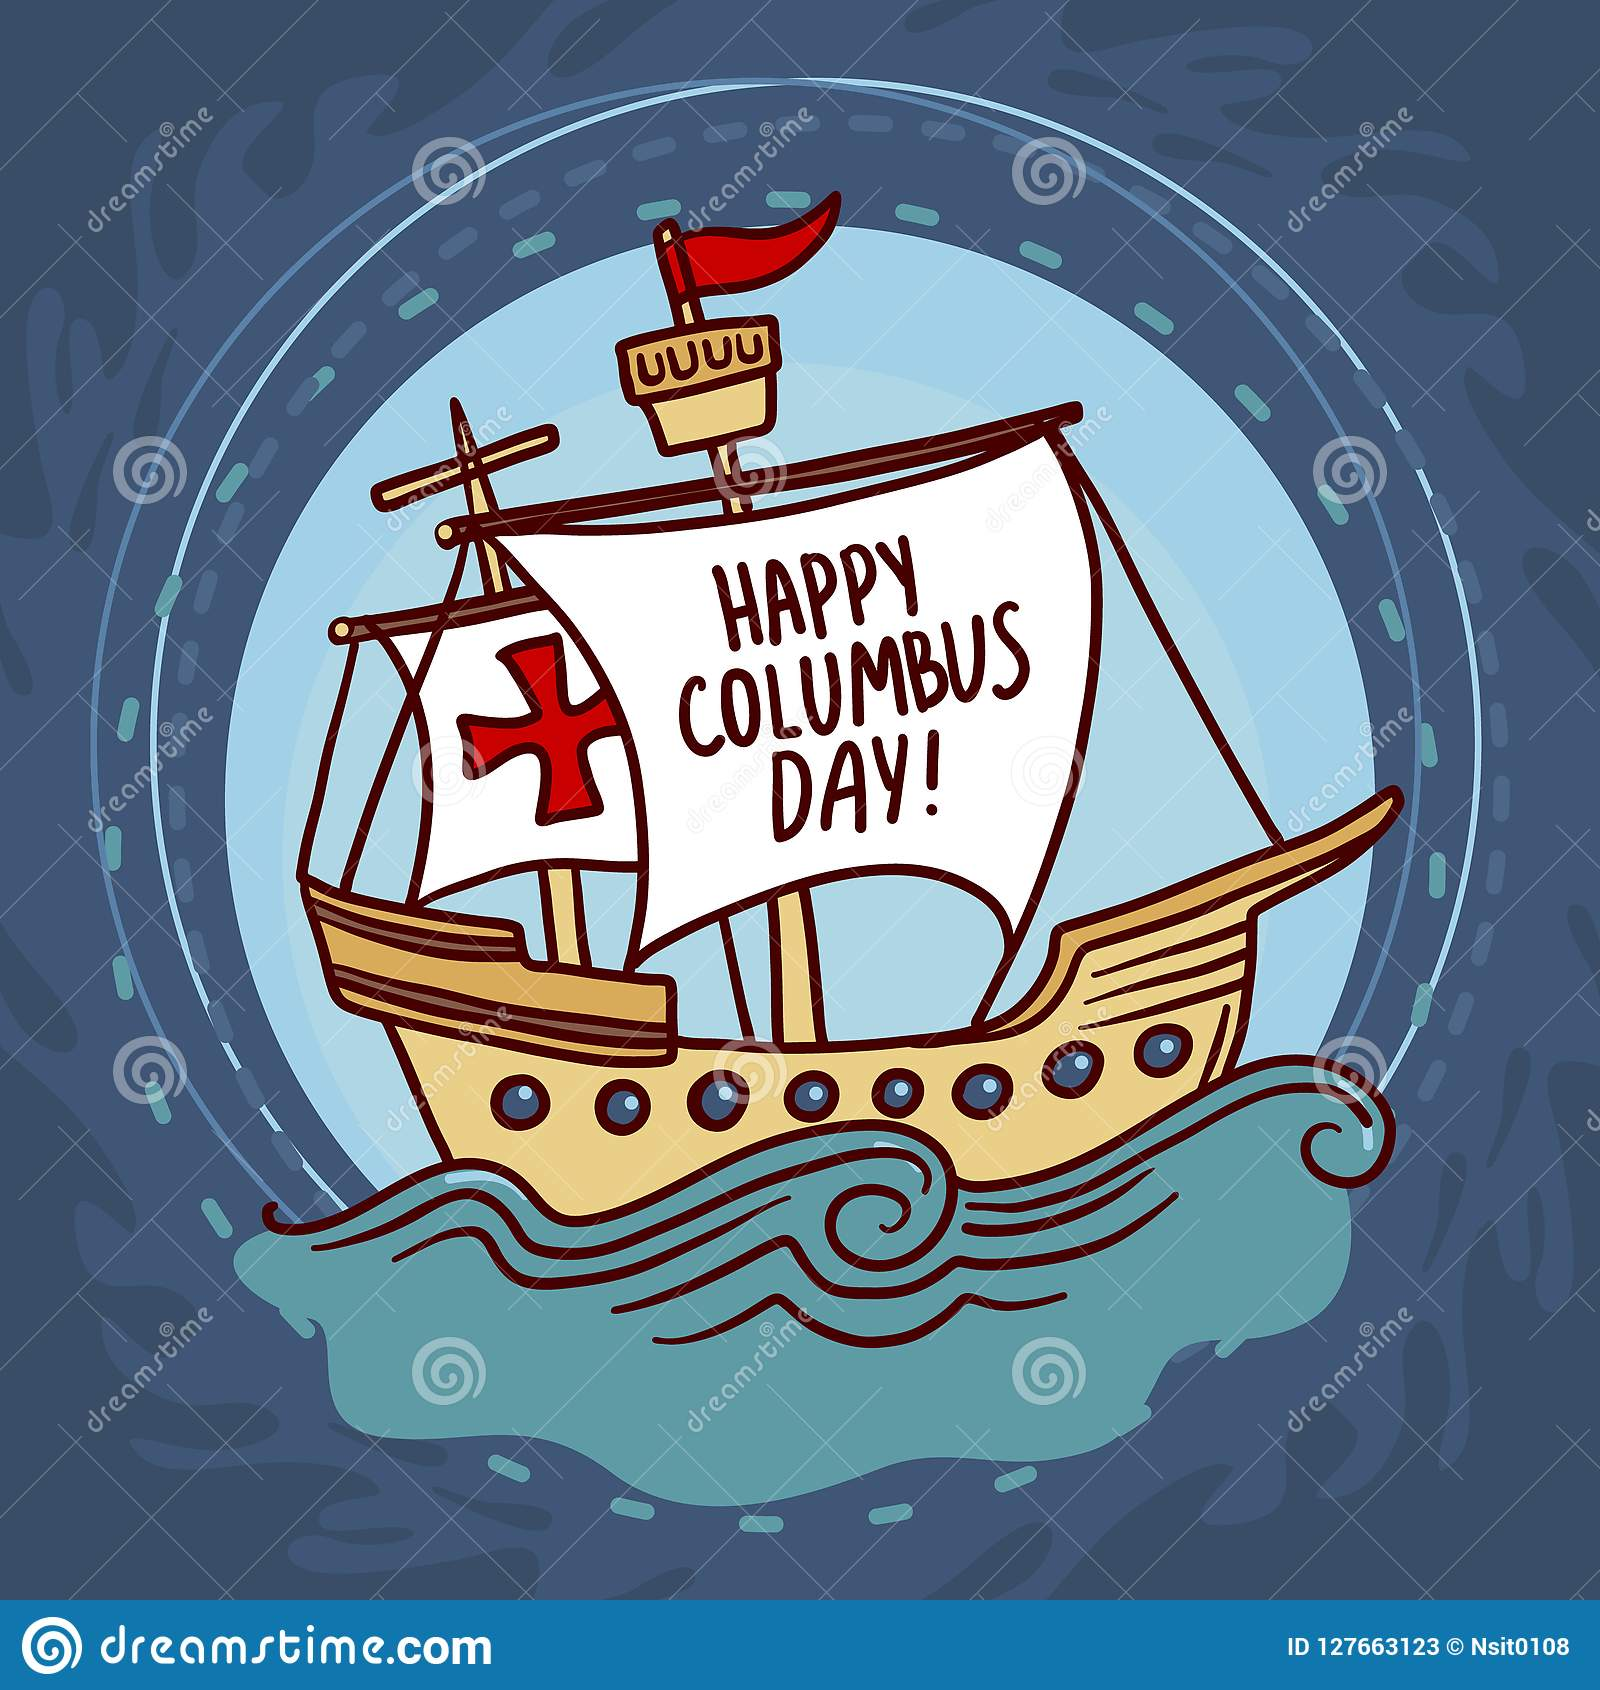 Ship columbus day concept background, hand drawn style